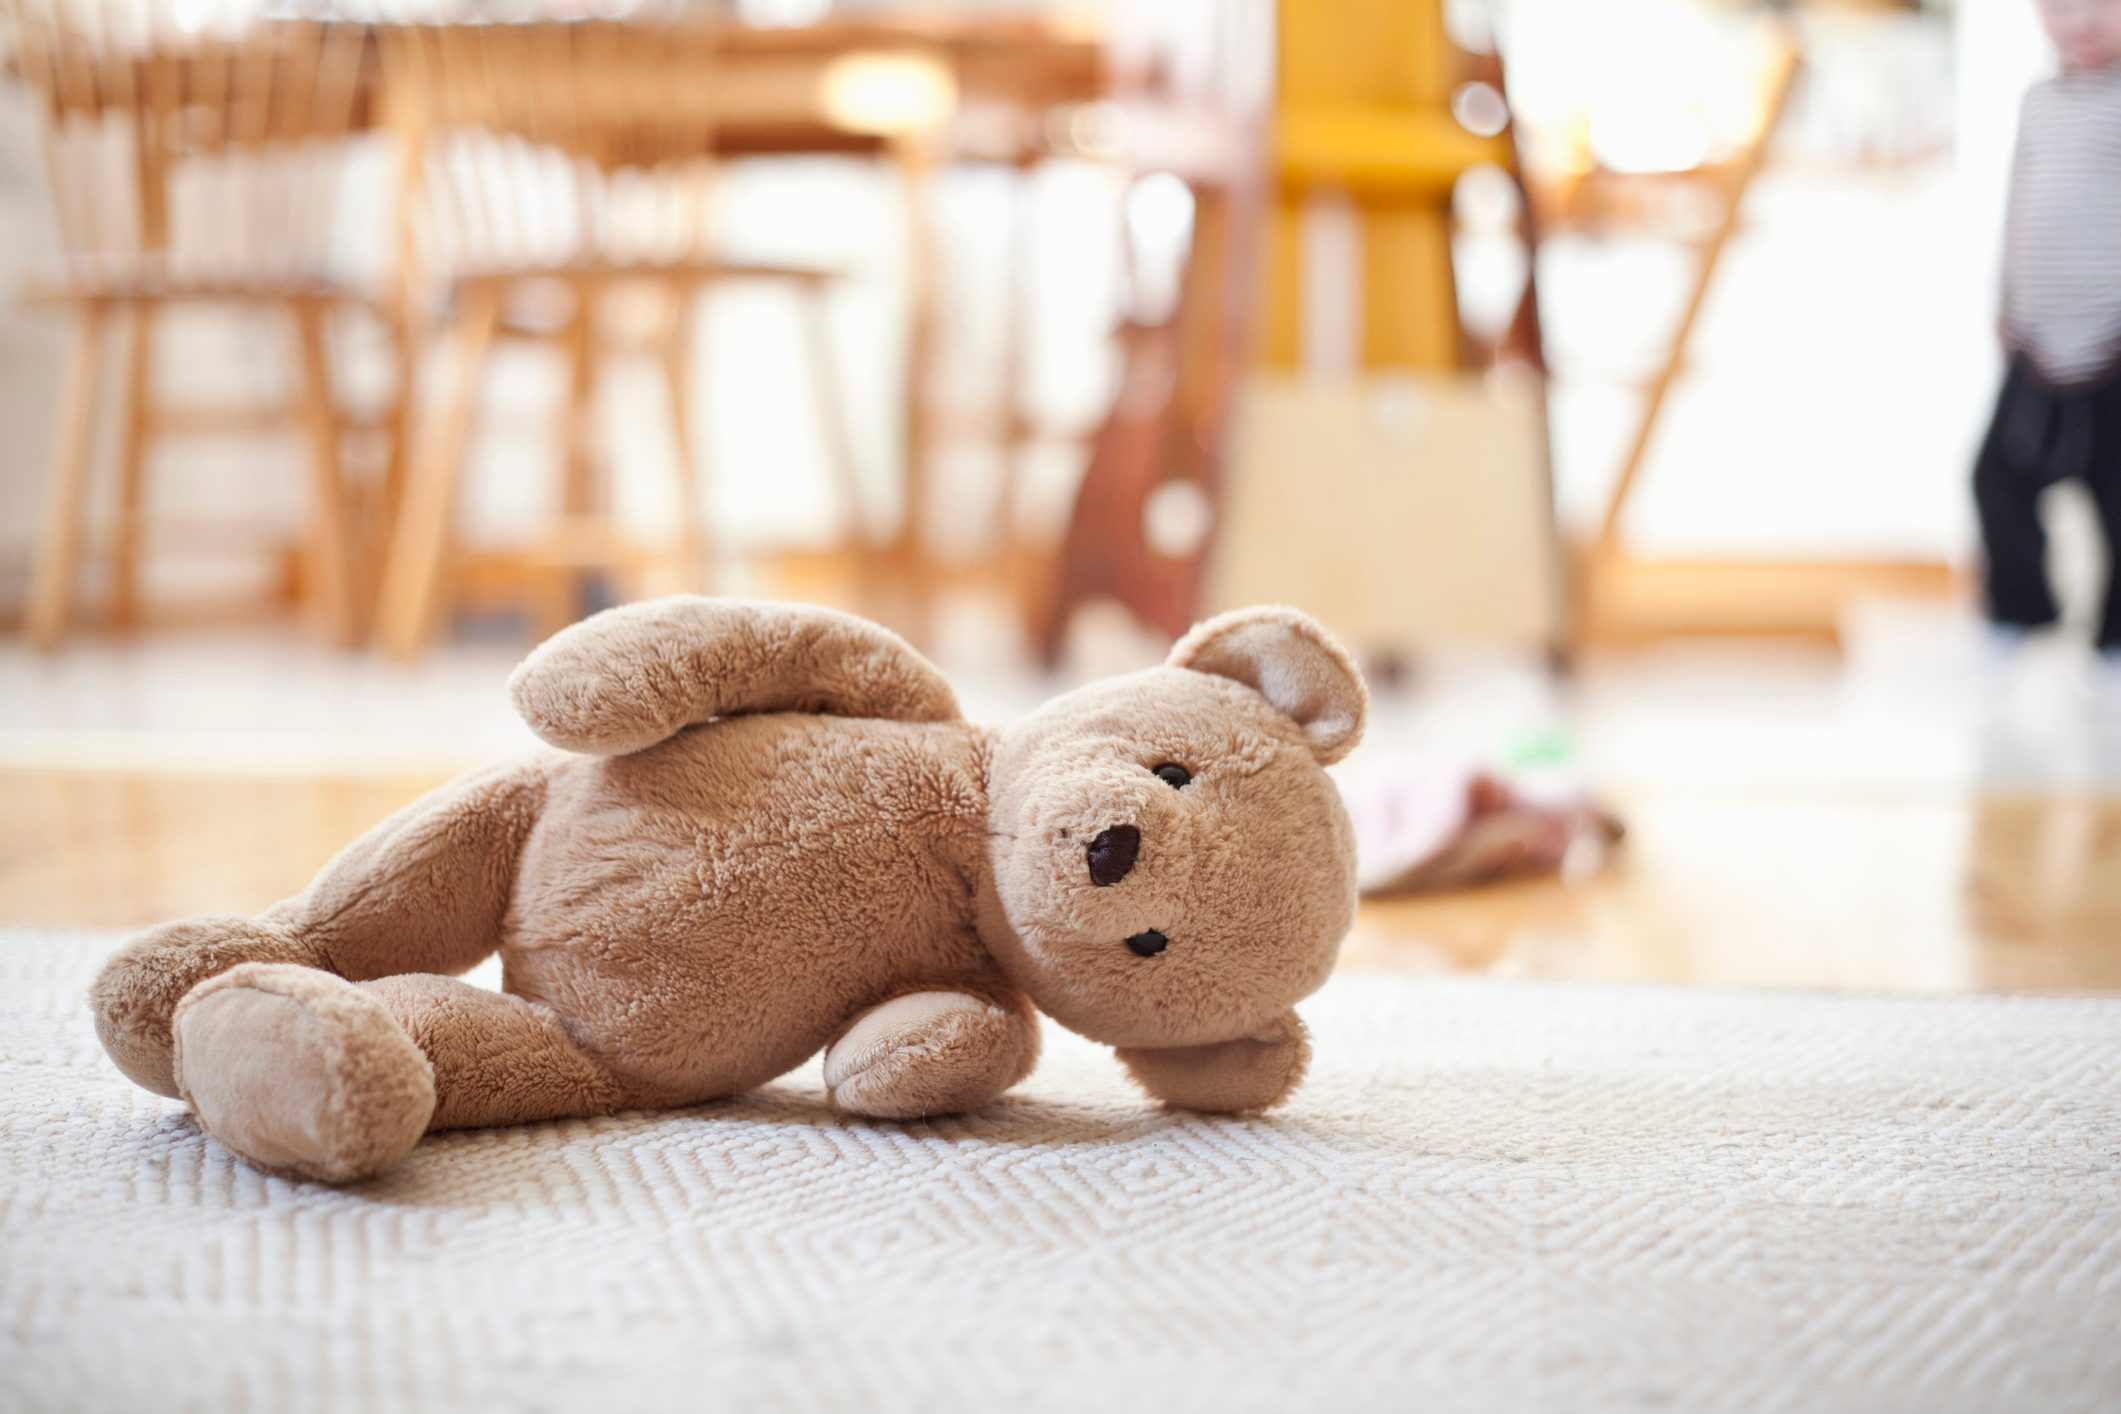 stuffed teddy bear toy on ground of home